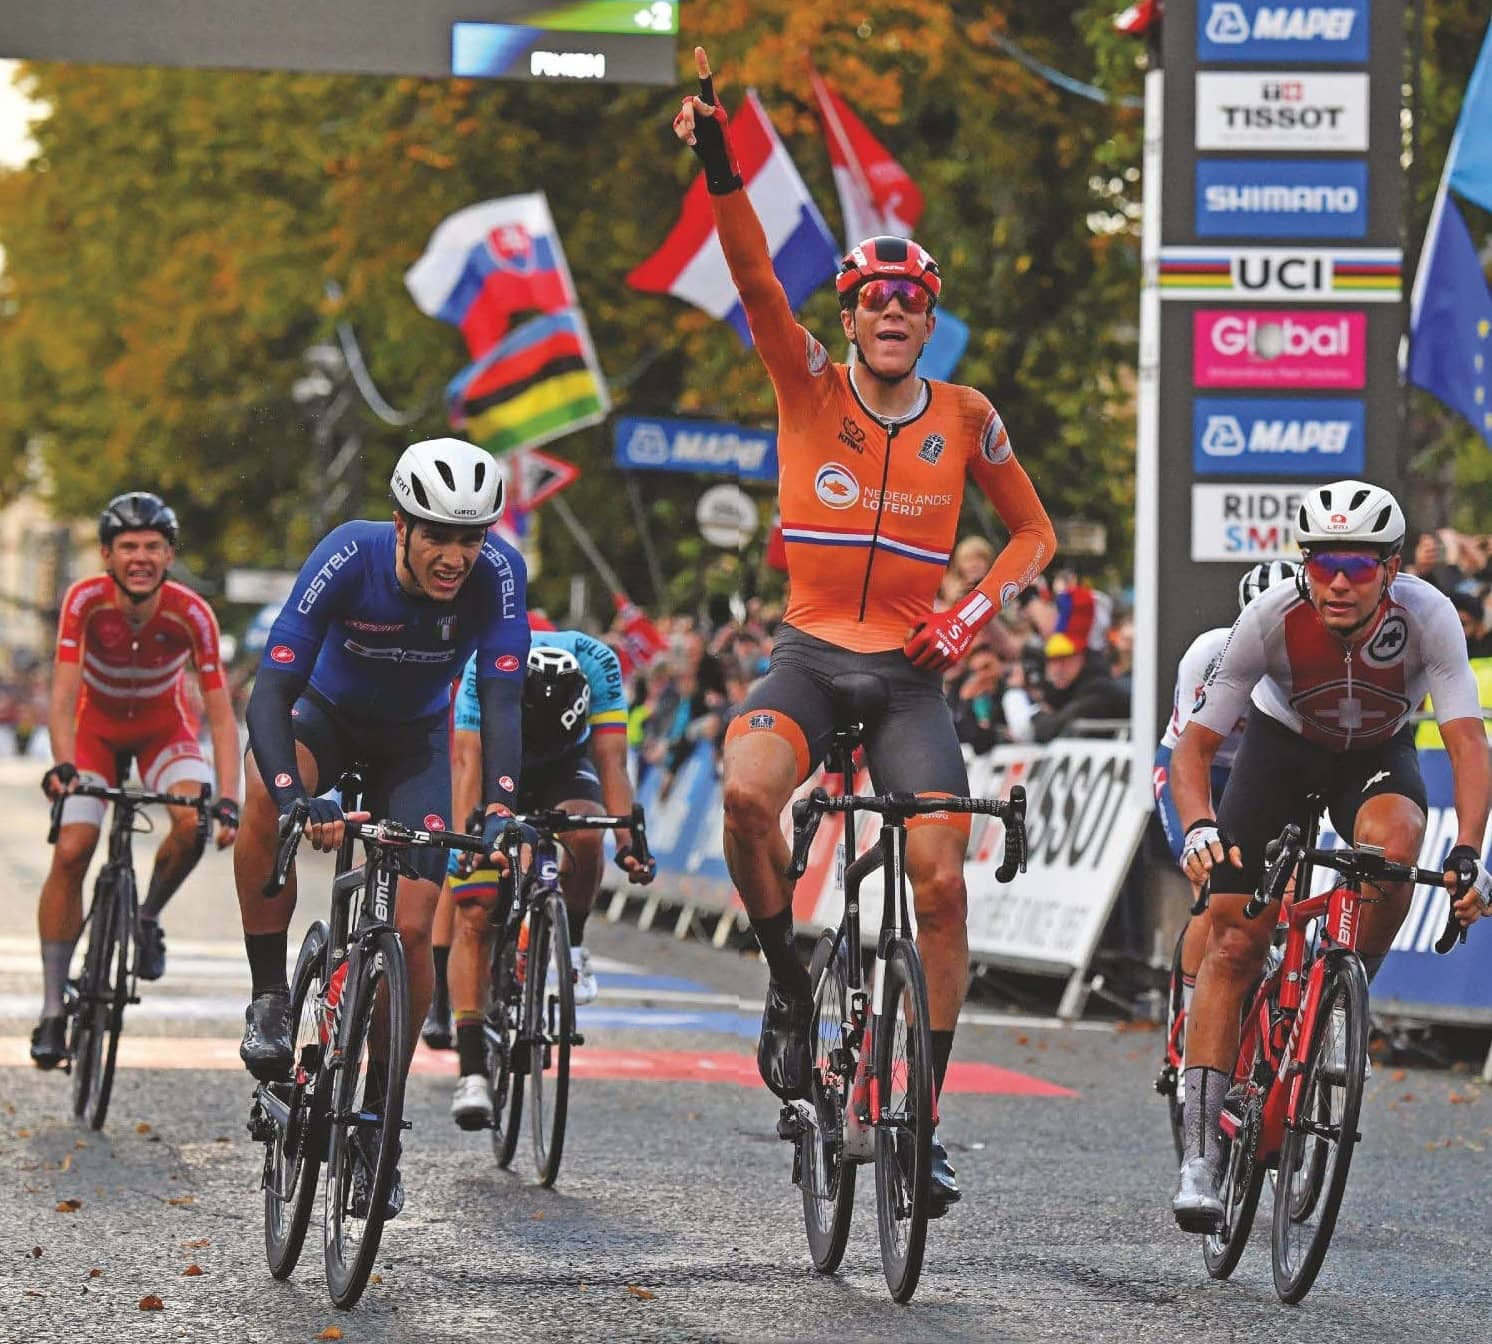 UCI considers overhauling young rider categories